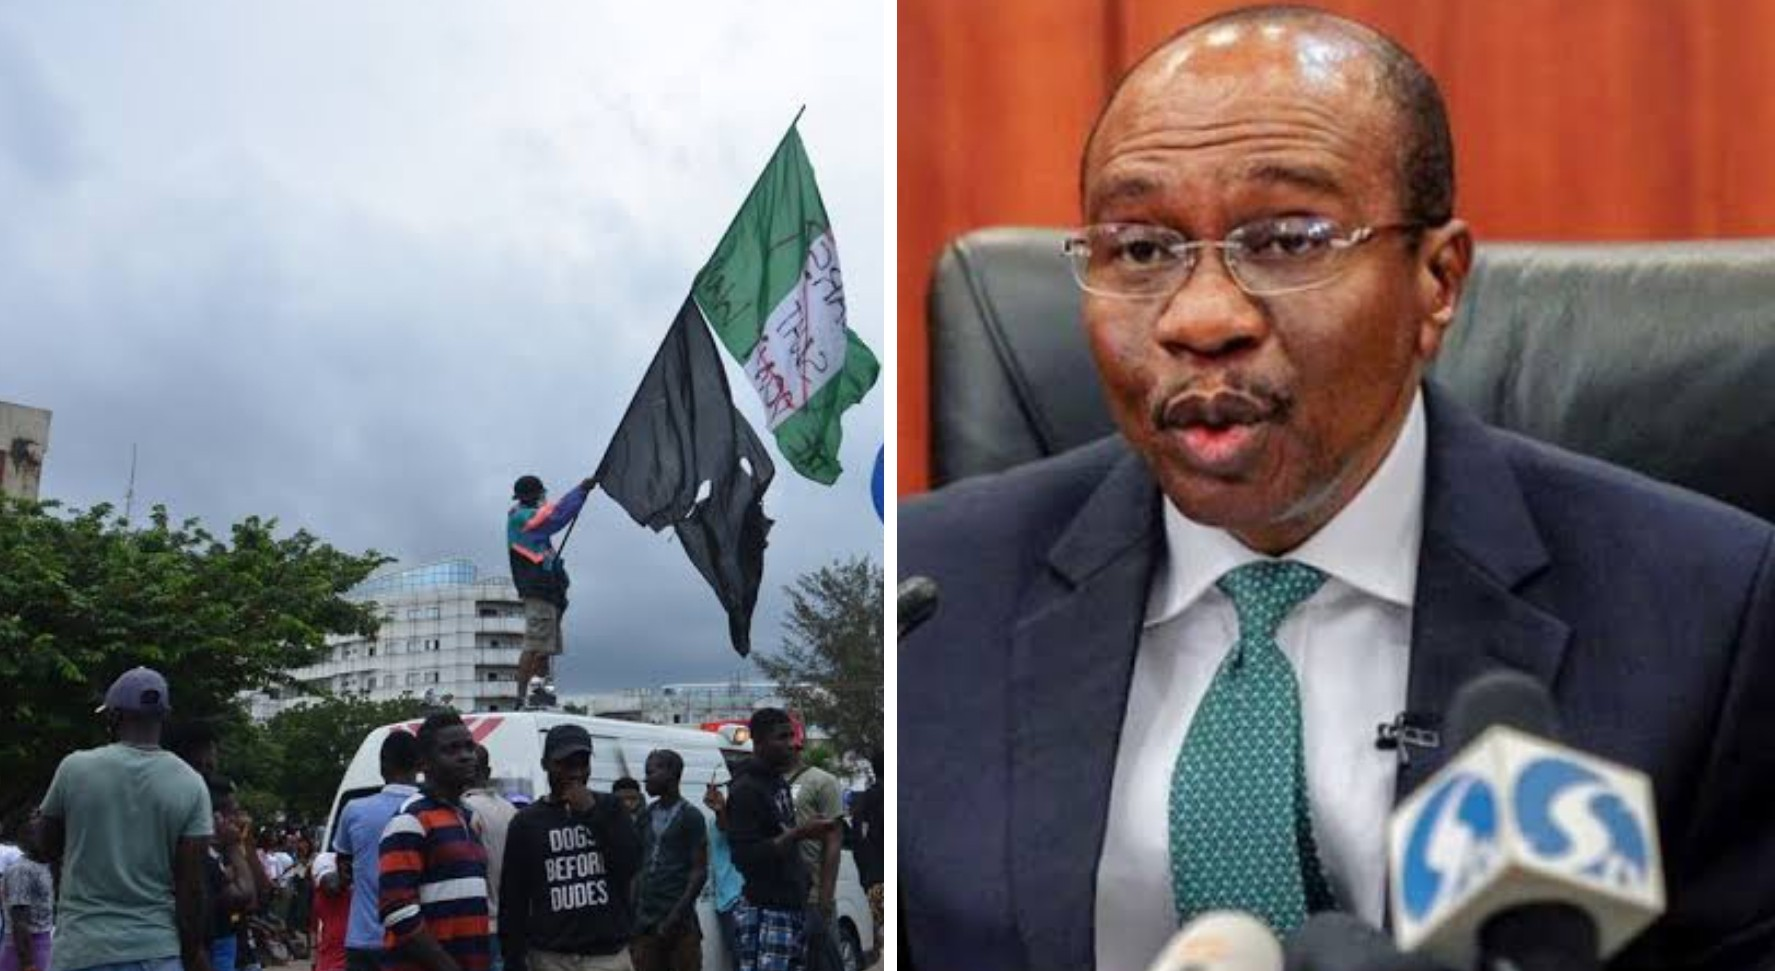 CBN begs court not to unfreeze #EndSARS campaigners' accounts